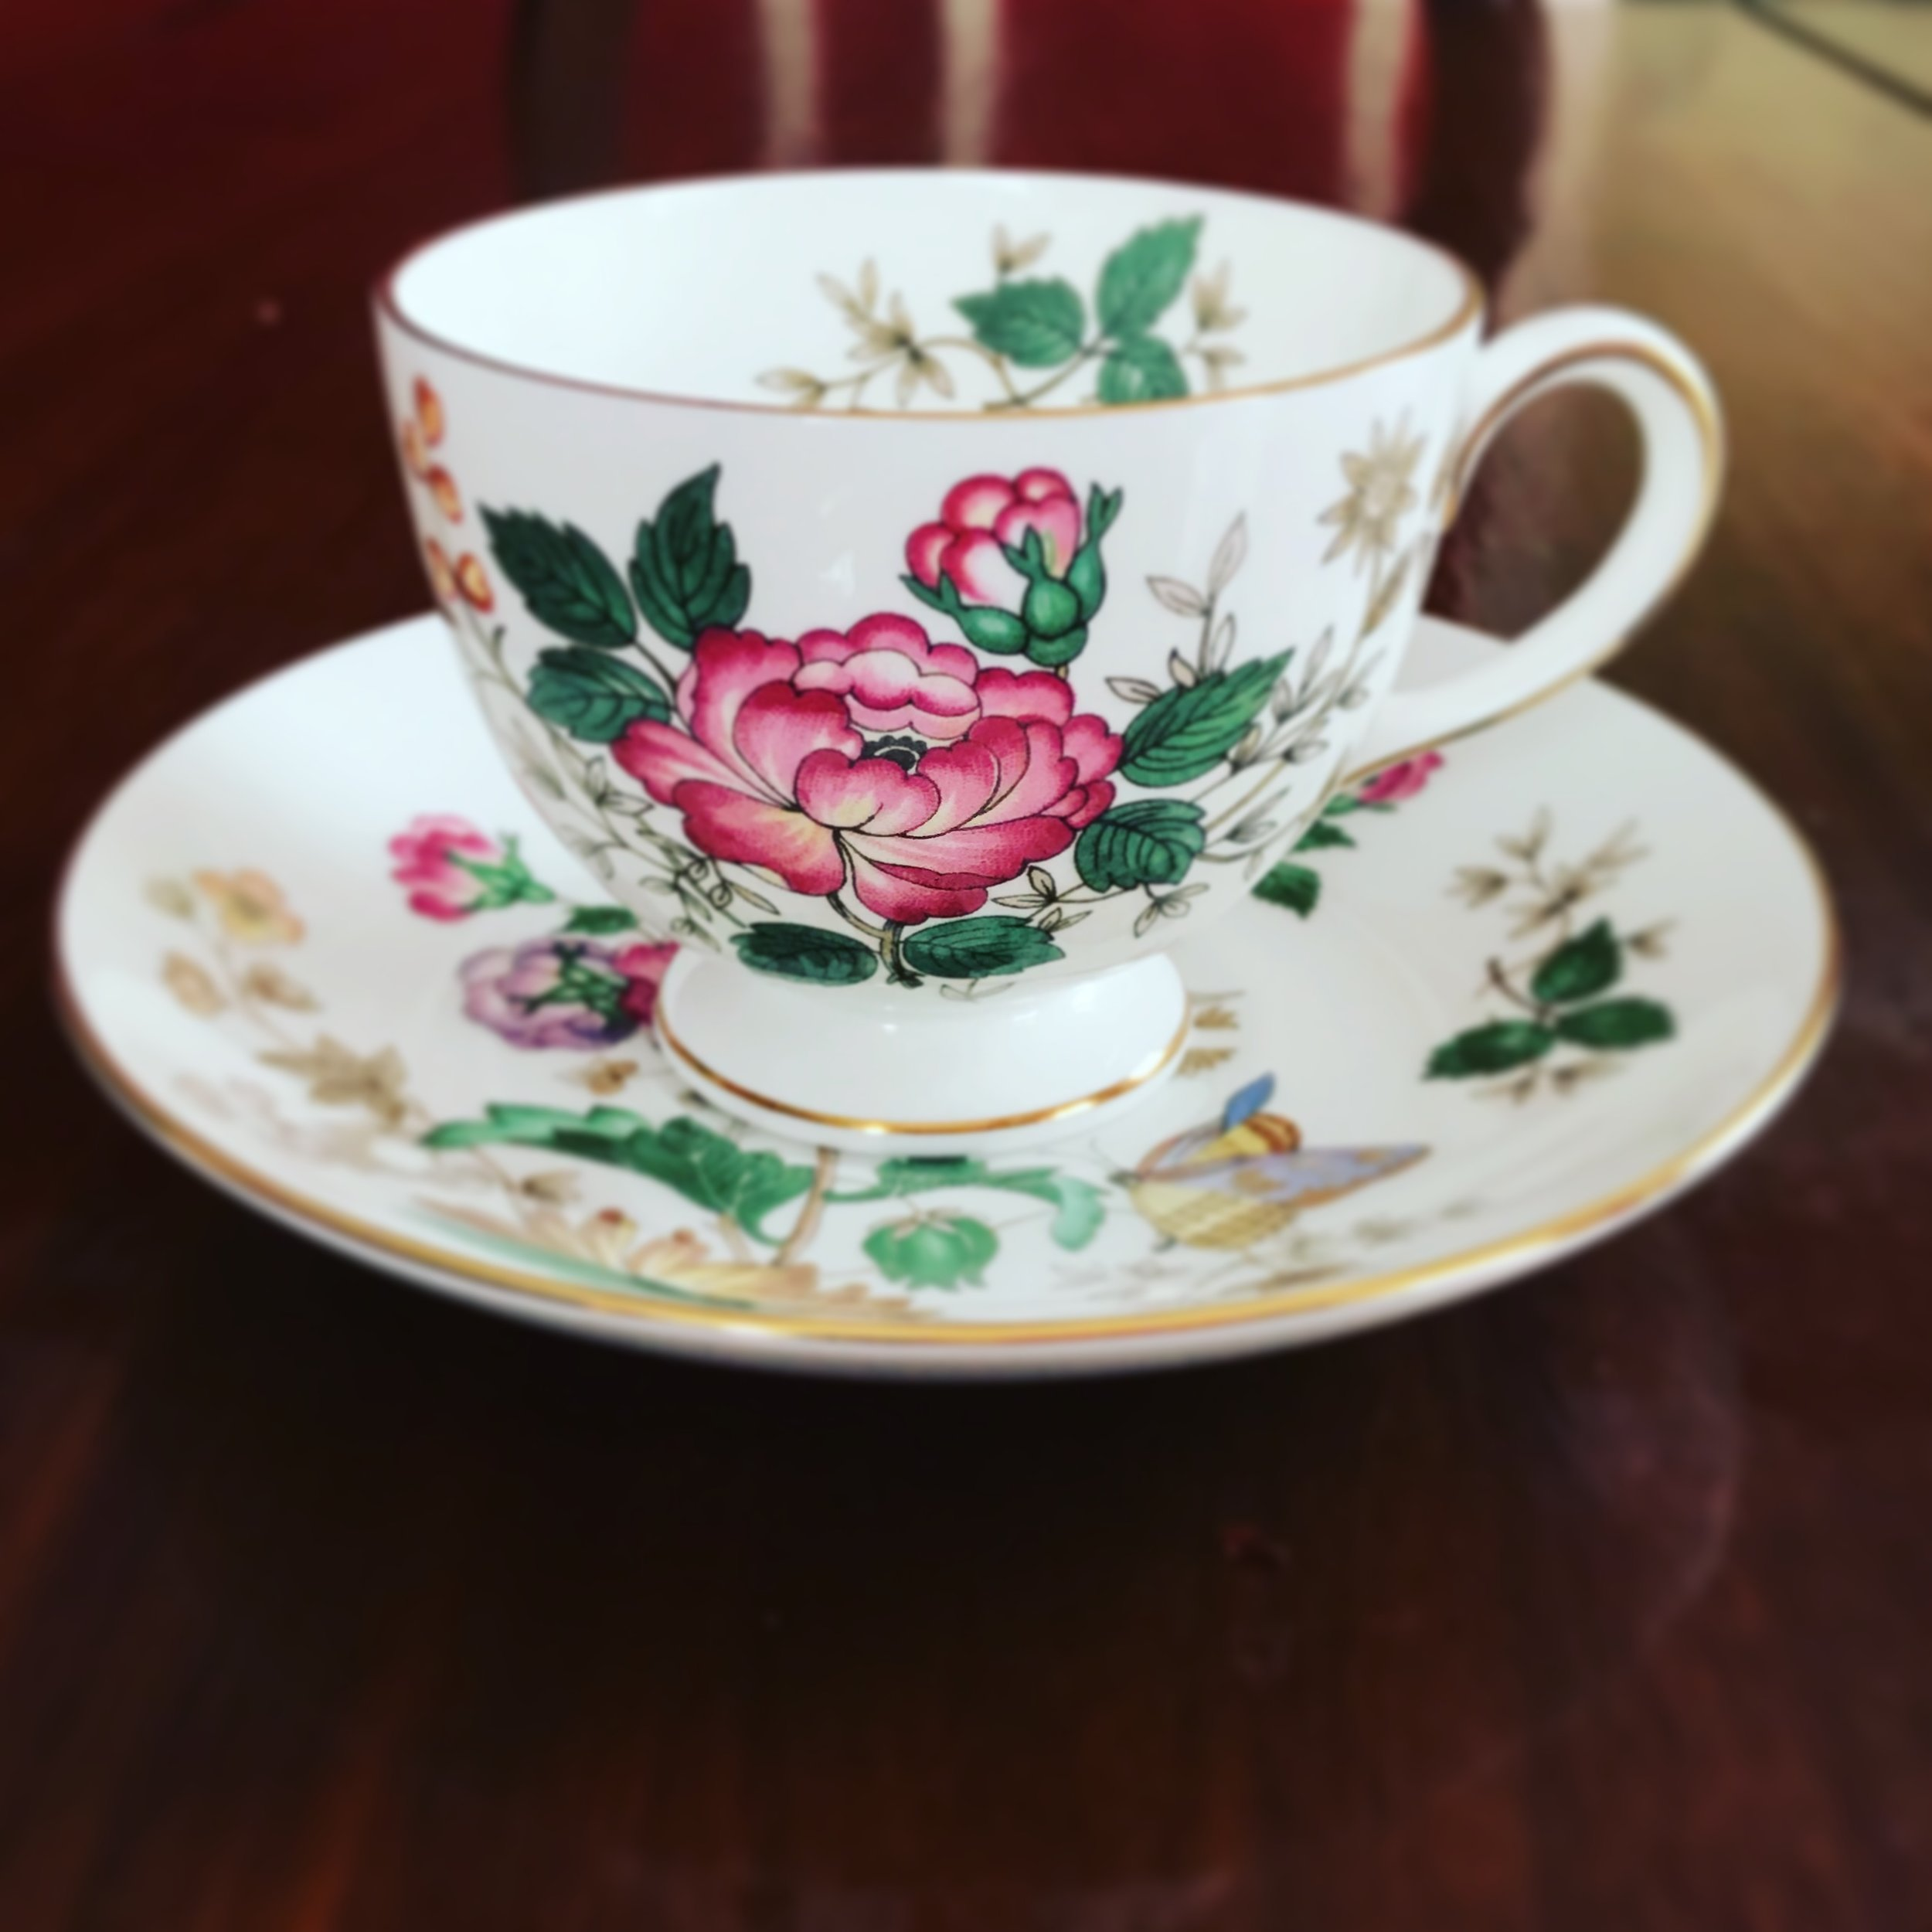 Wedgwood teacup and saucer